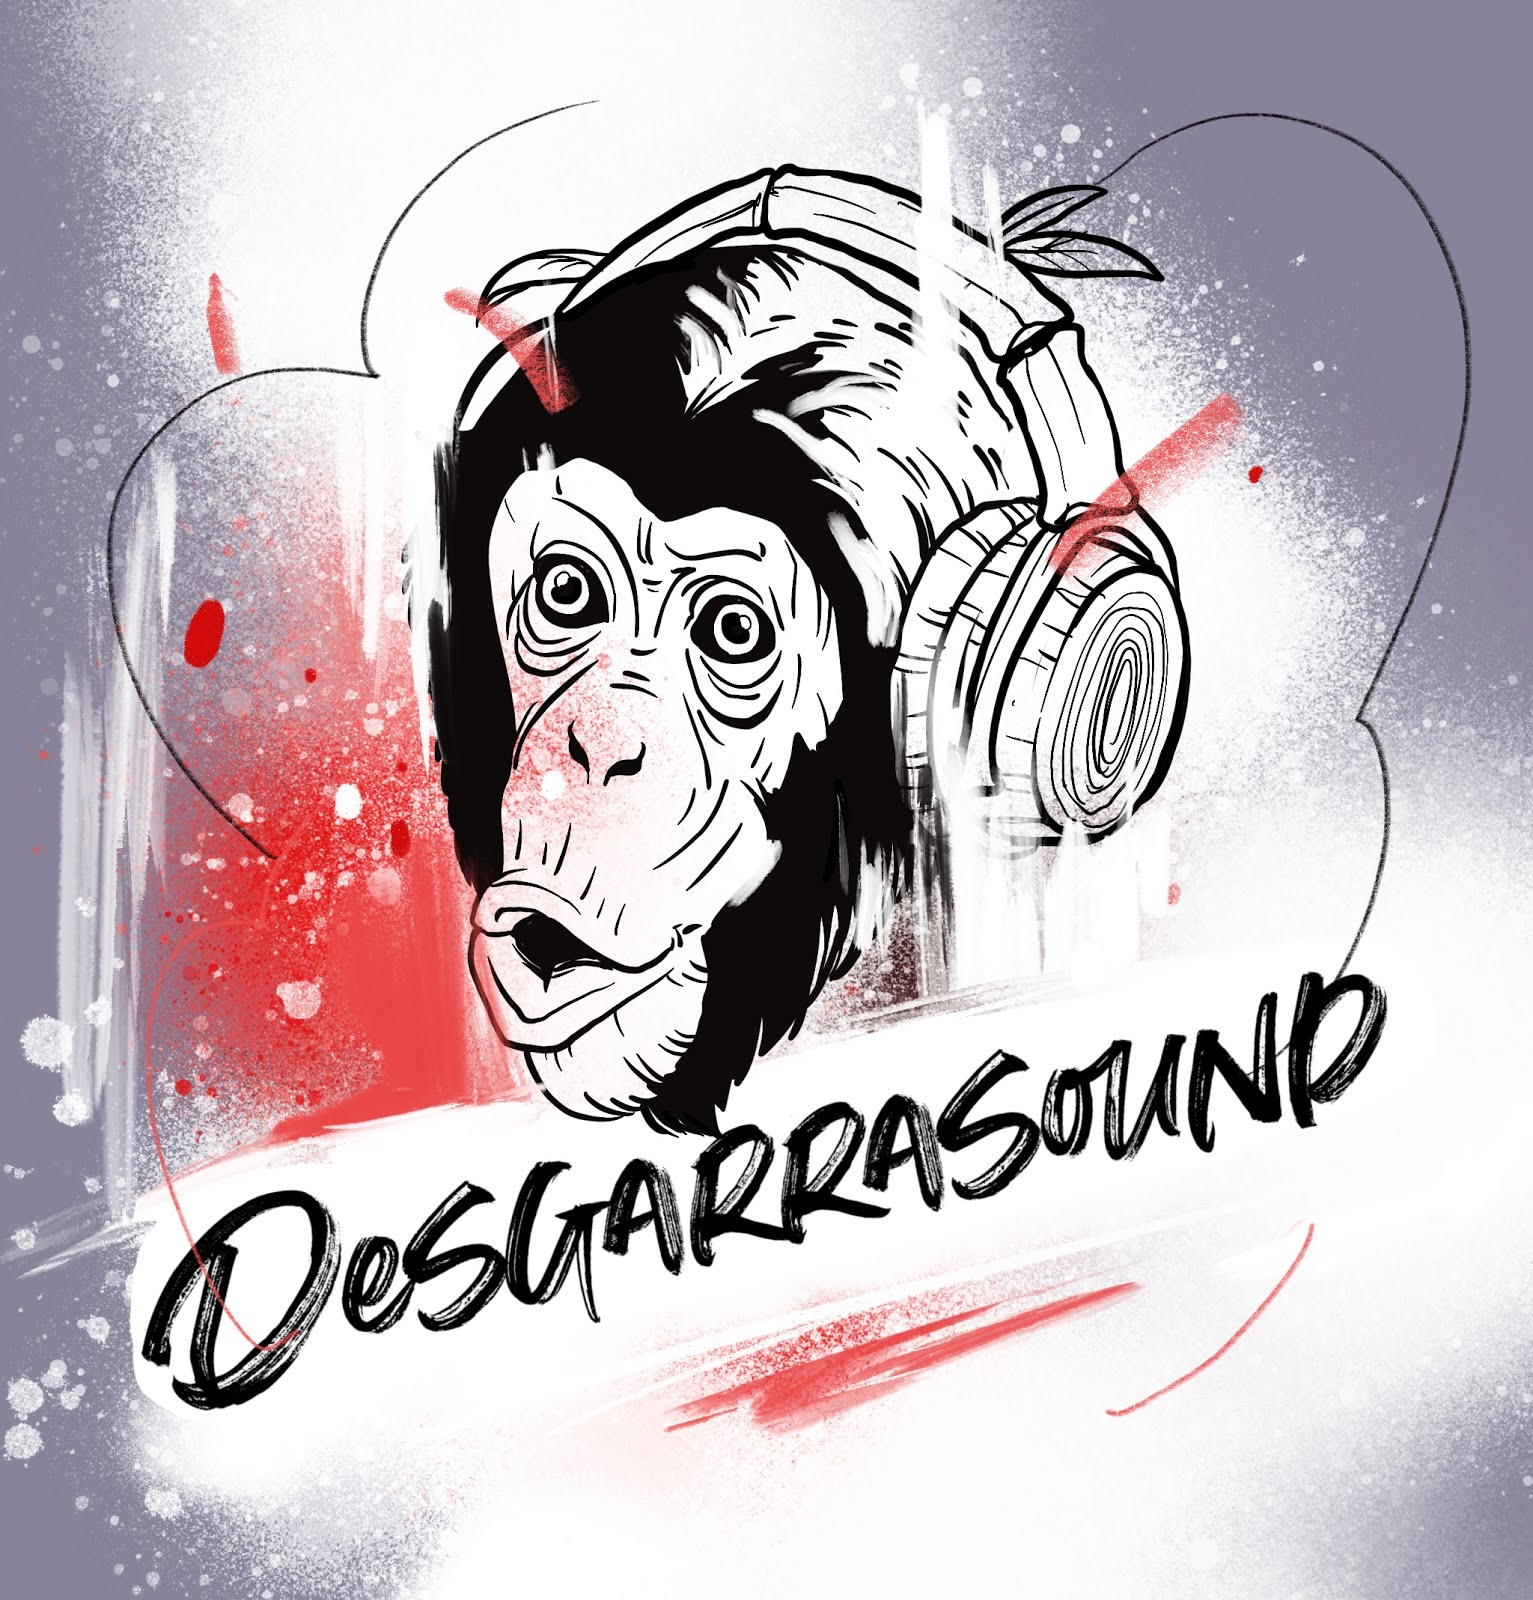 DESGARRASOUND LIVE SESSION